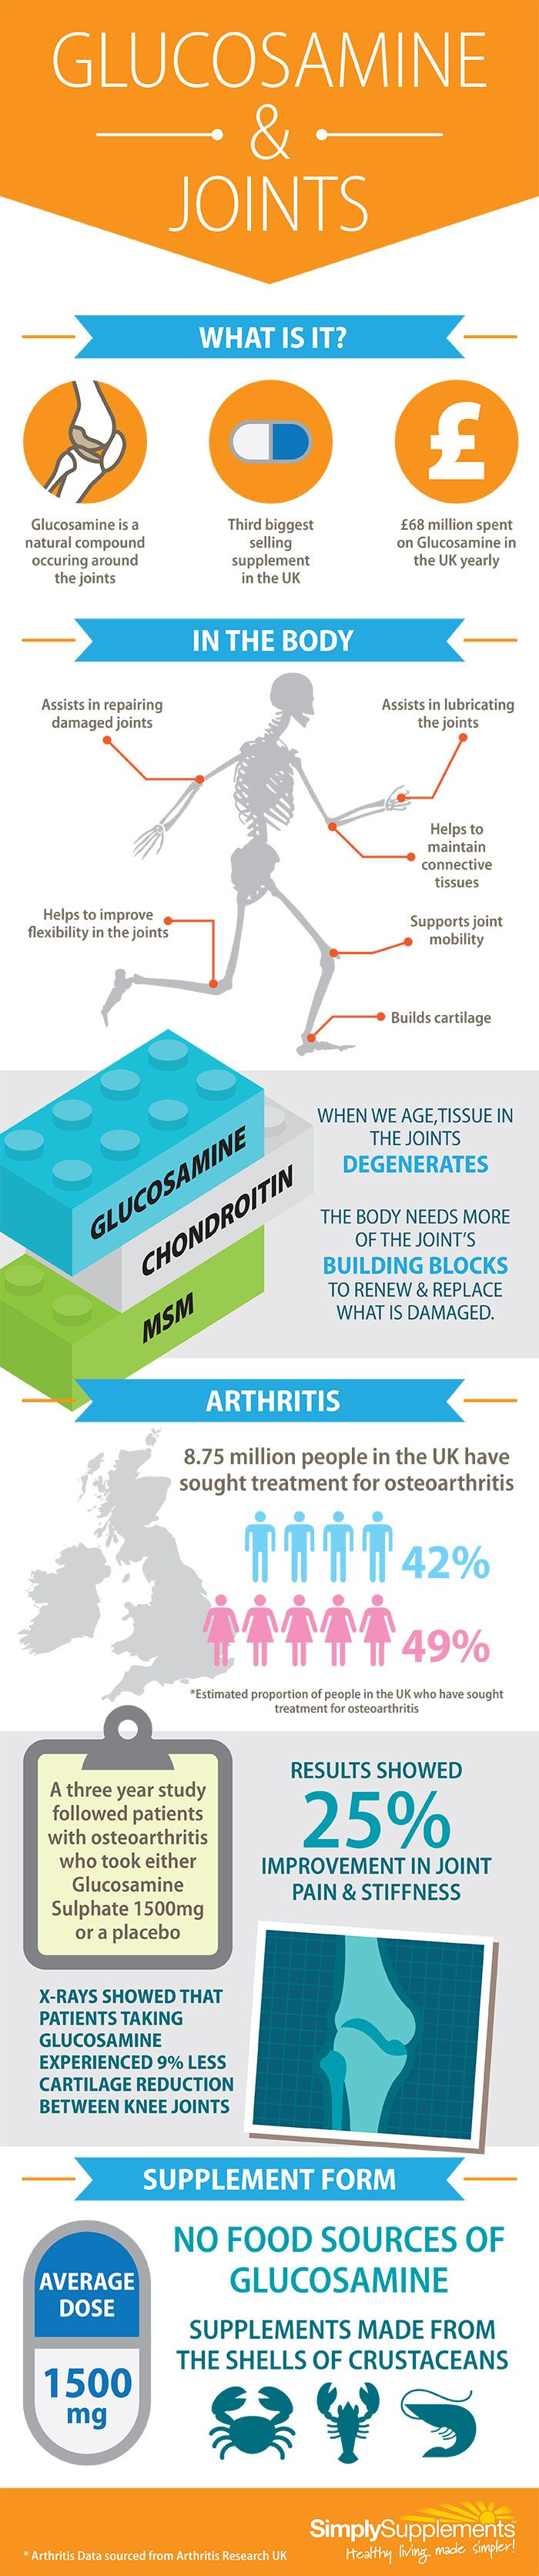 Glucosamine For Joints - Healthy Life